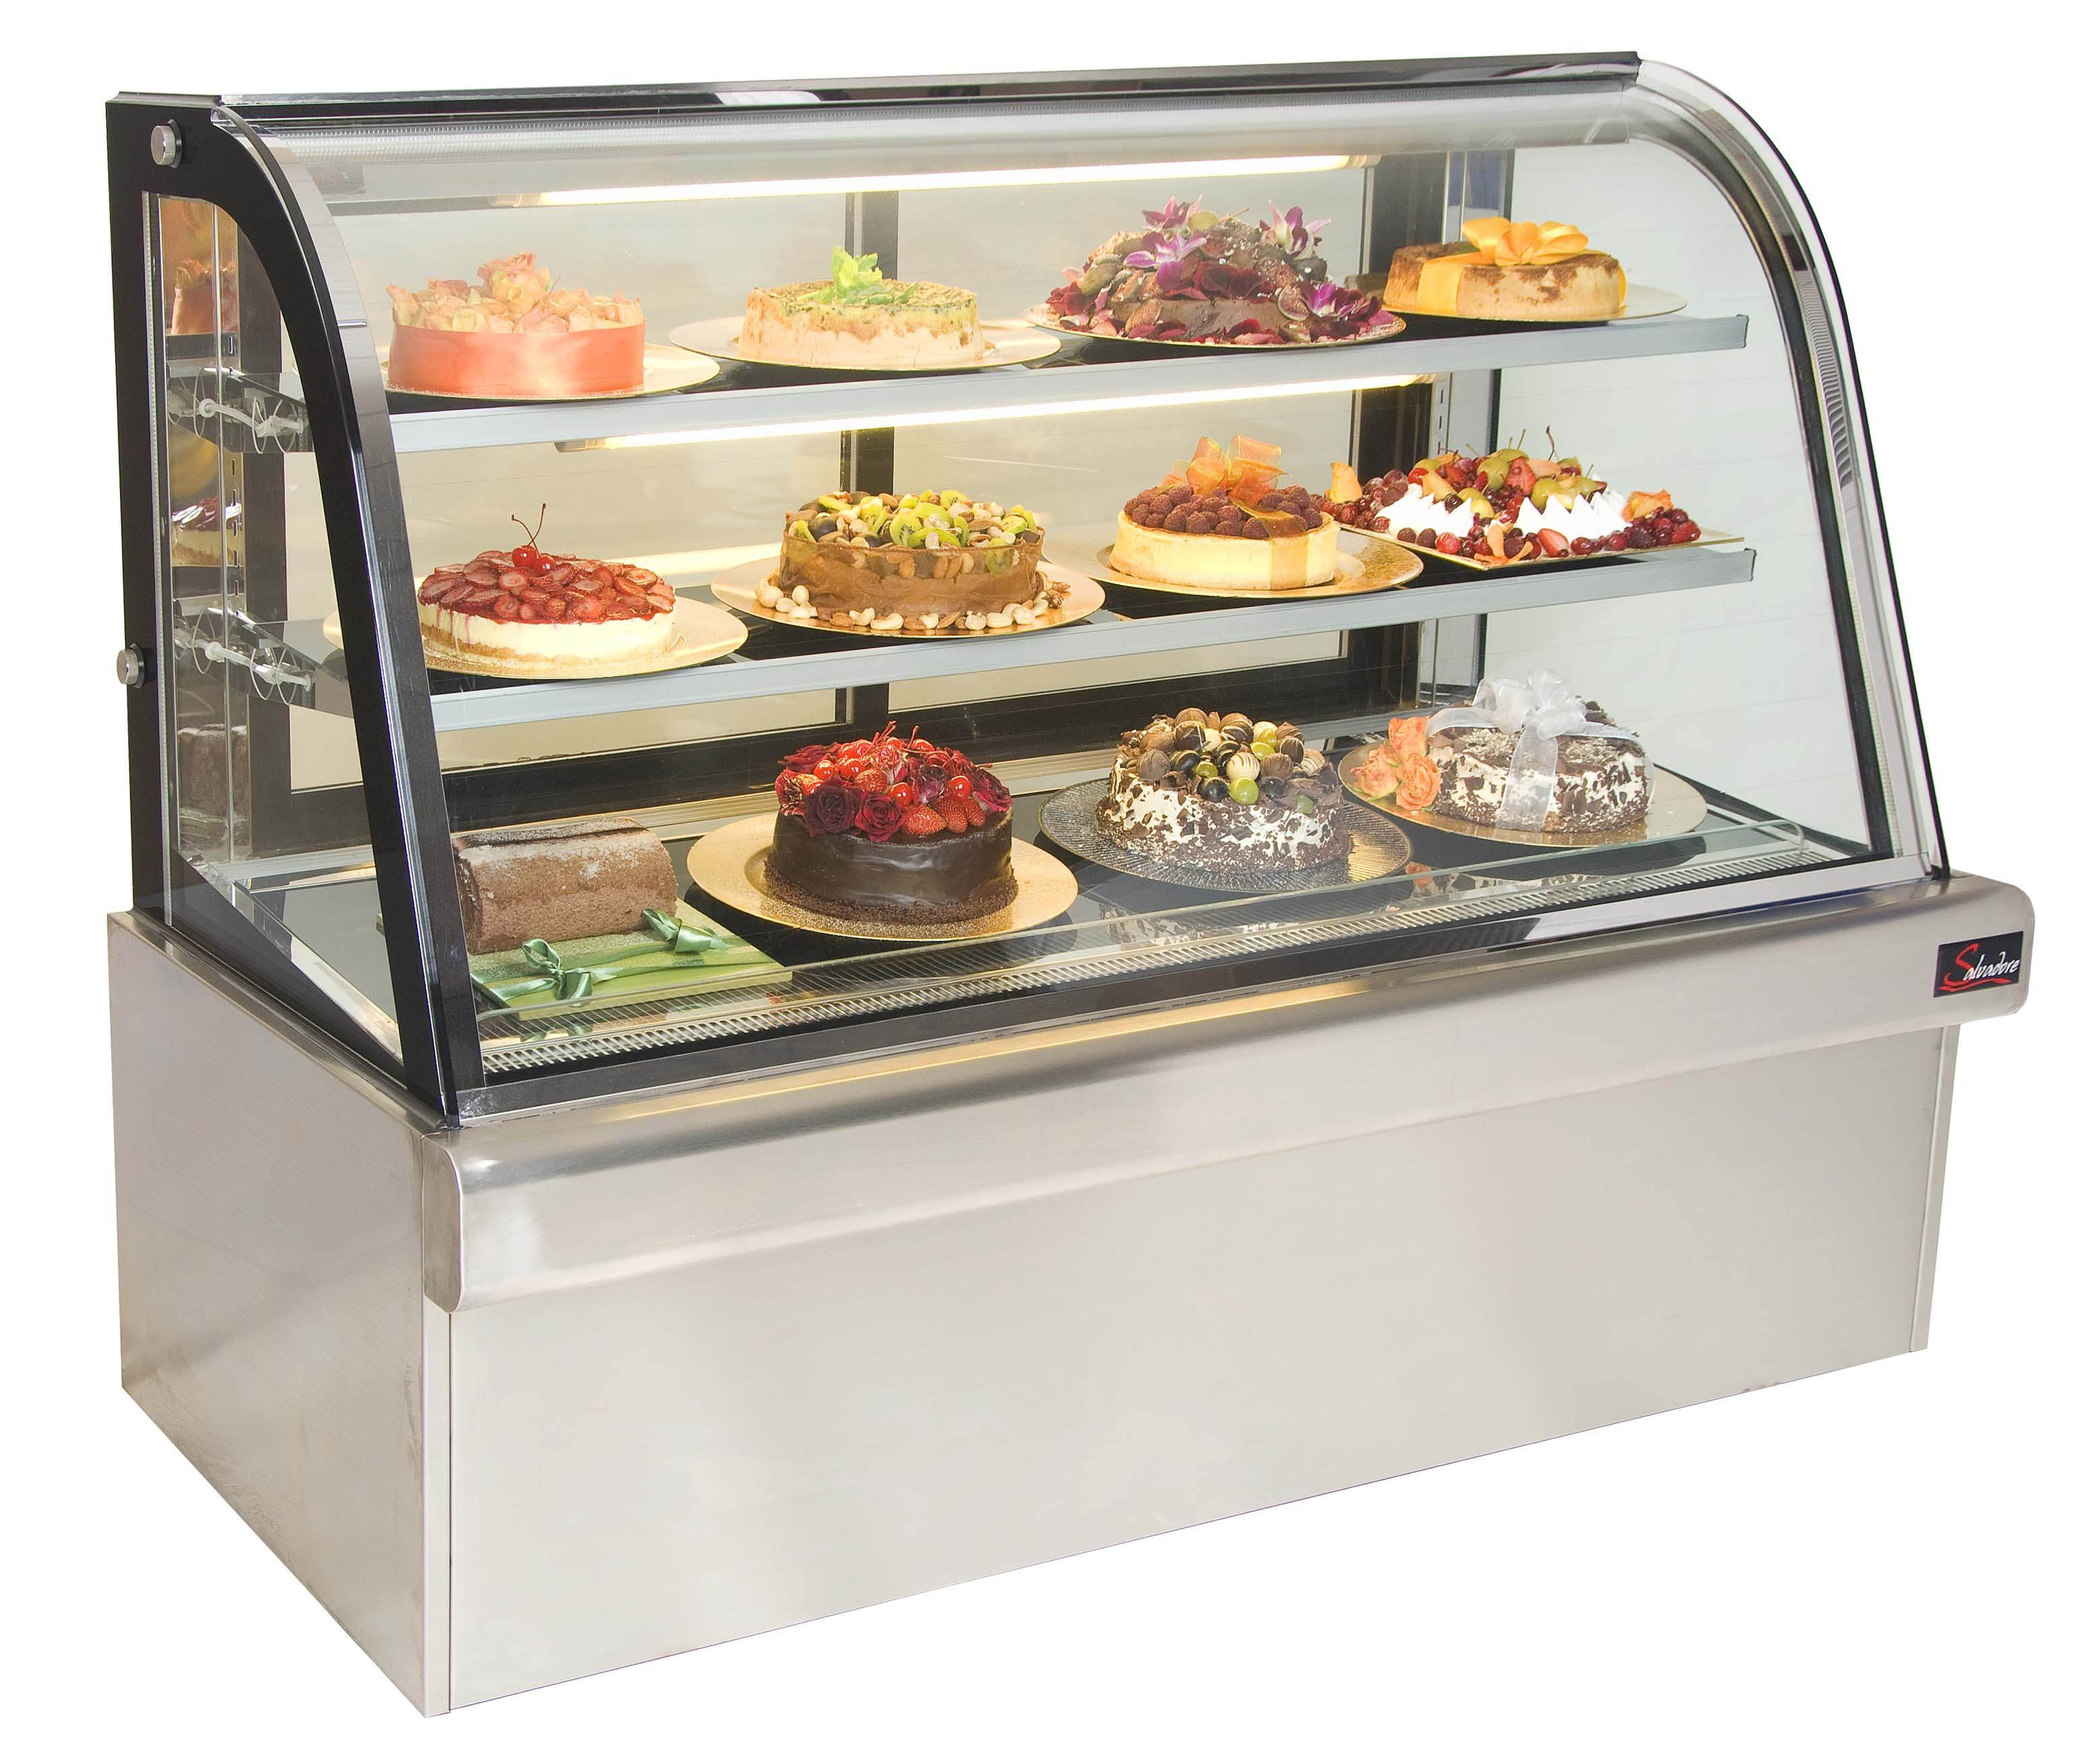 Cake Display Fridge For Sale South Africa